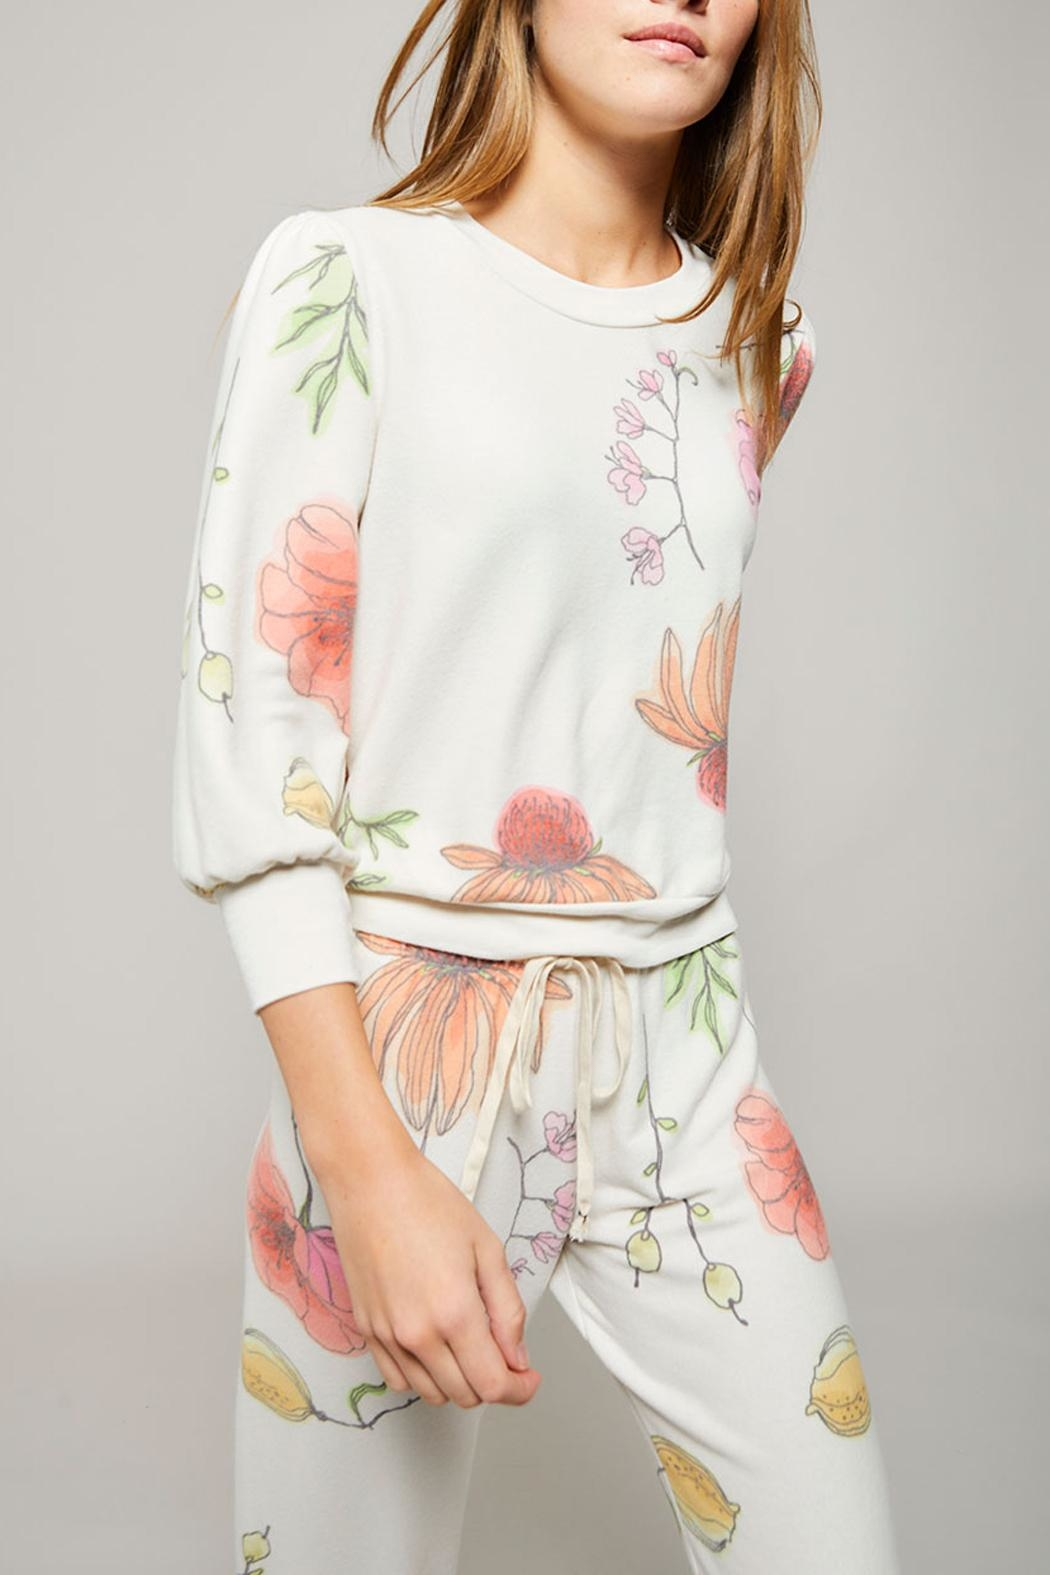 All Things Fabulous Poppies Spring Top - Main Image